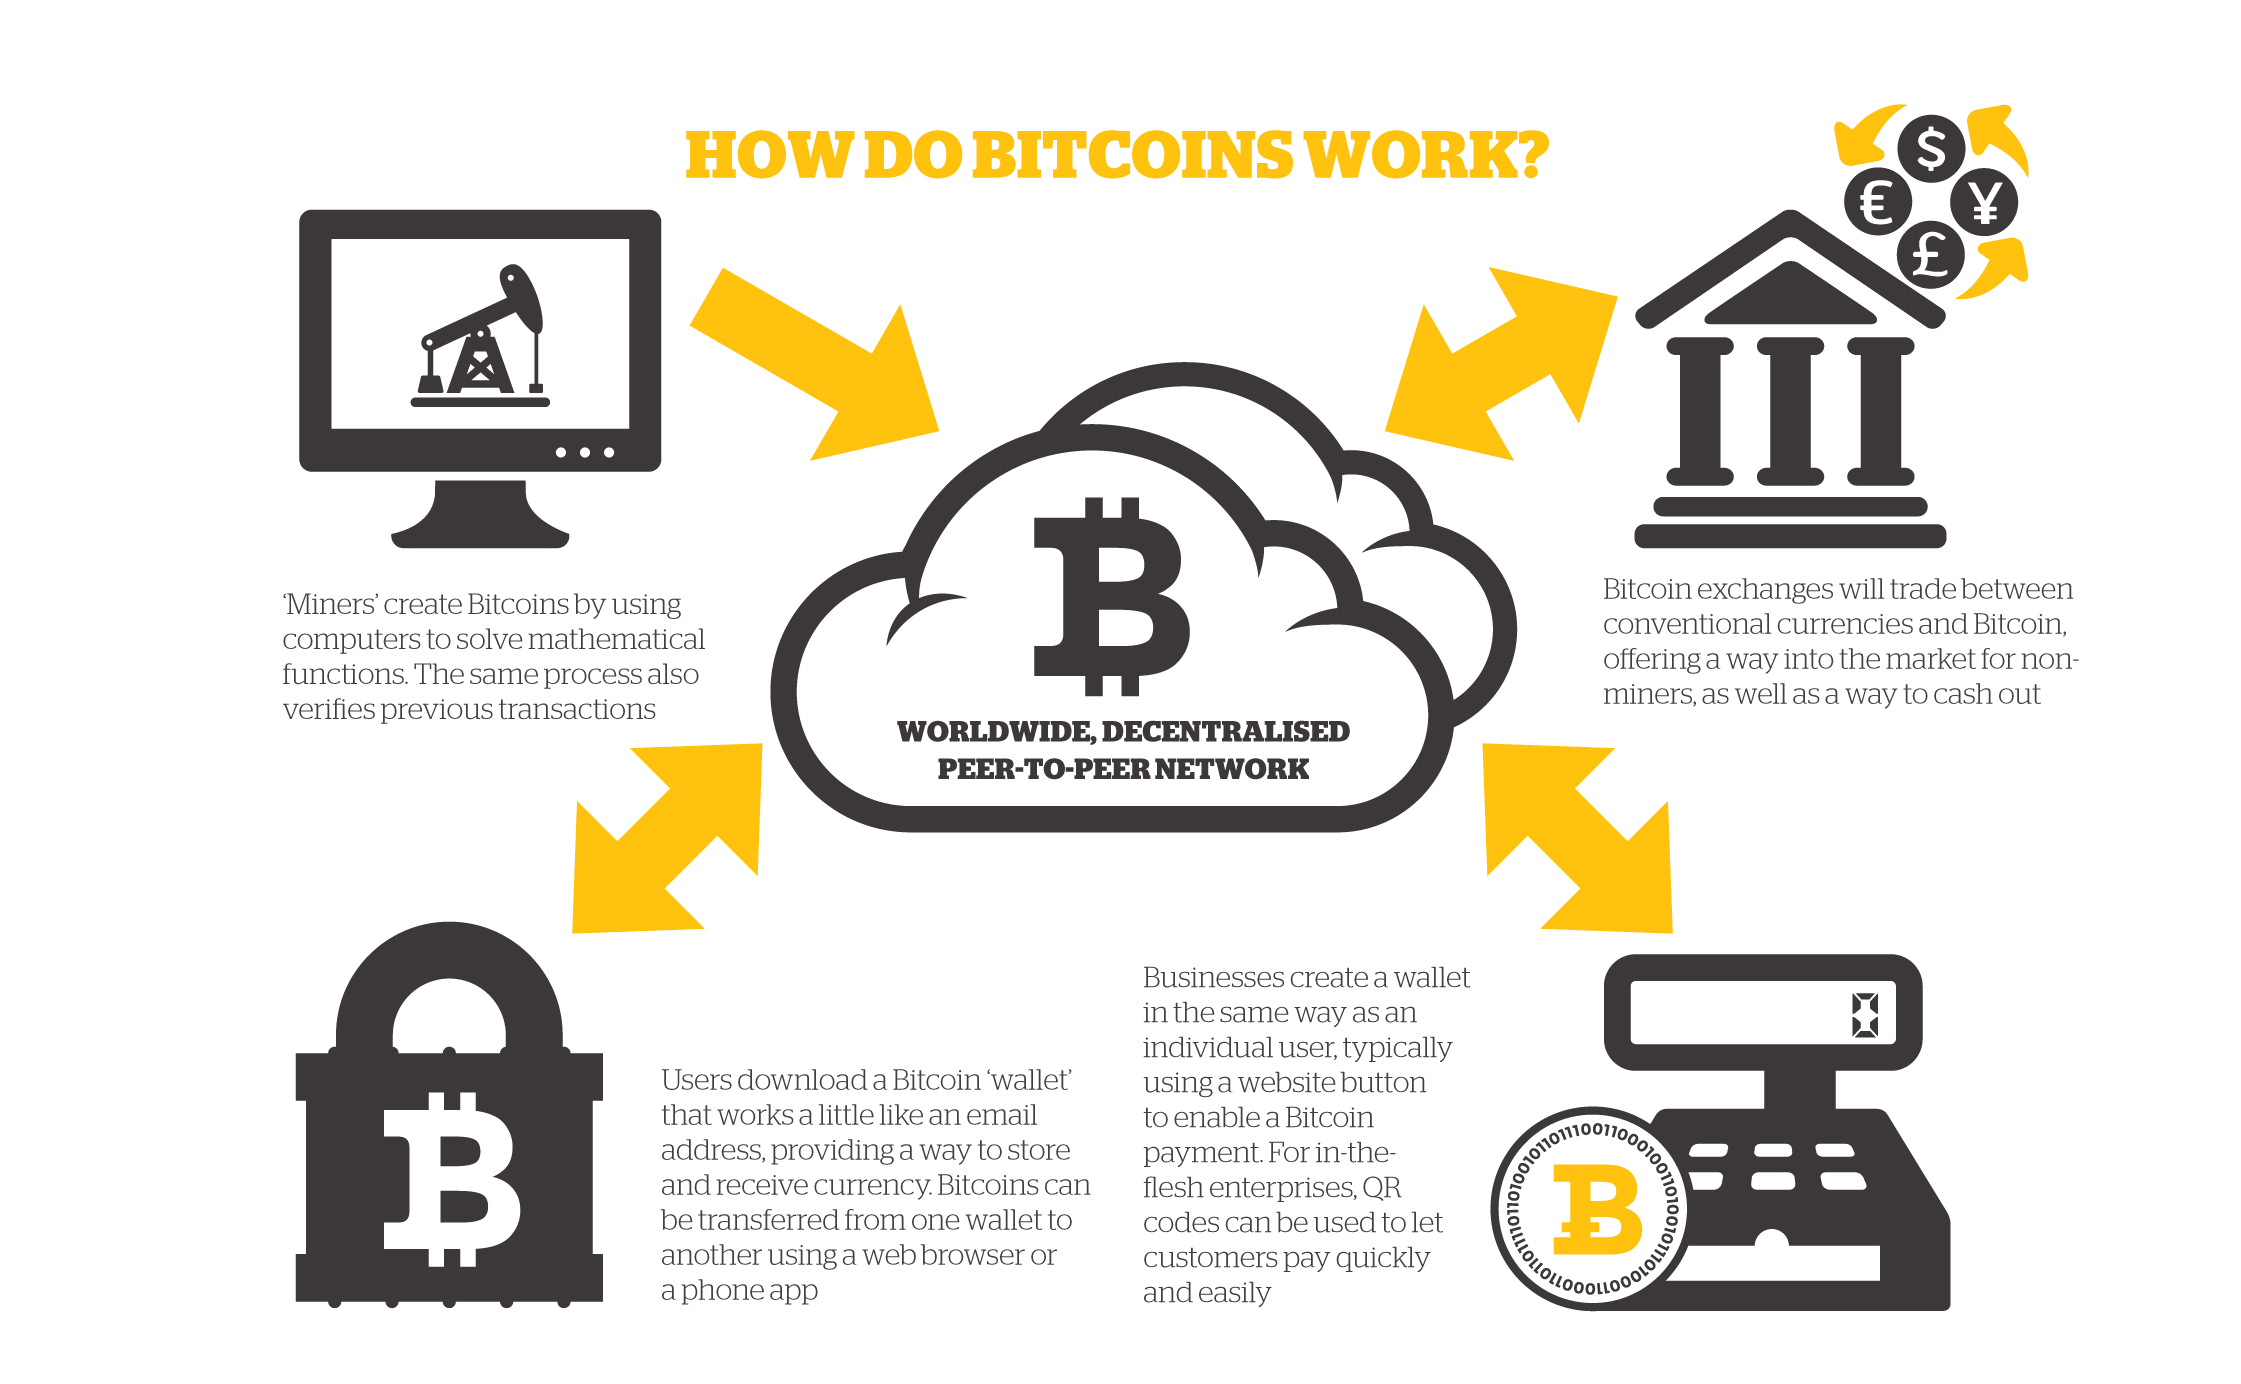 ... uk/aat-view/front-page-latest-featured-articles/bitcoin-what-is-it-how